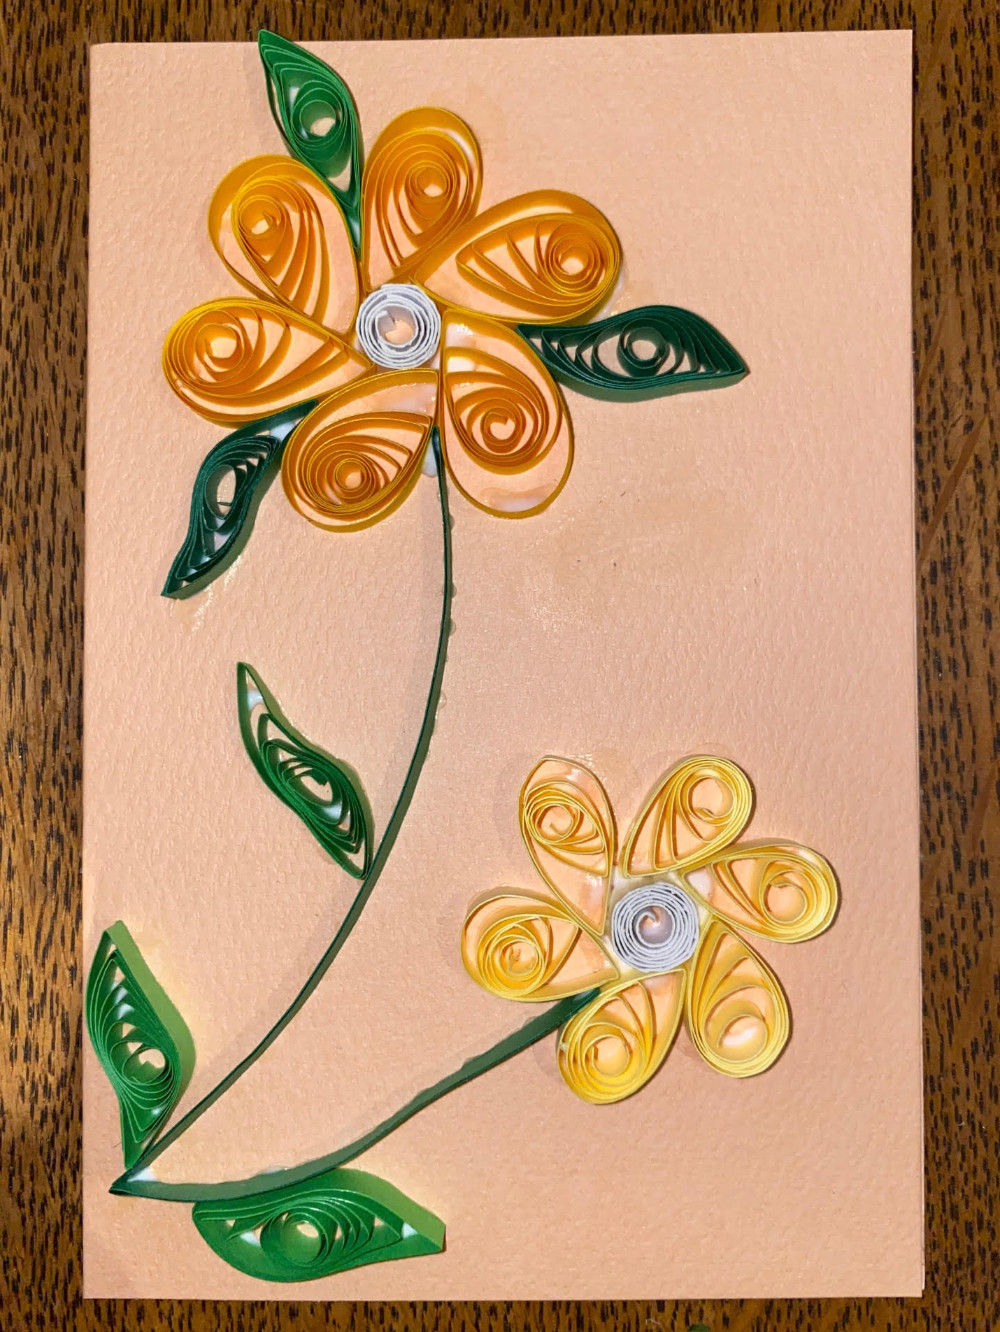 Flowery greetings card made by quilling paper